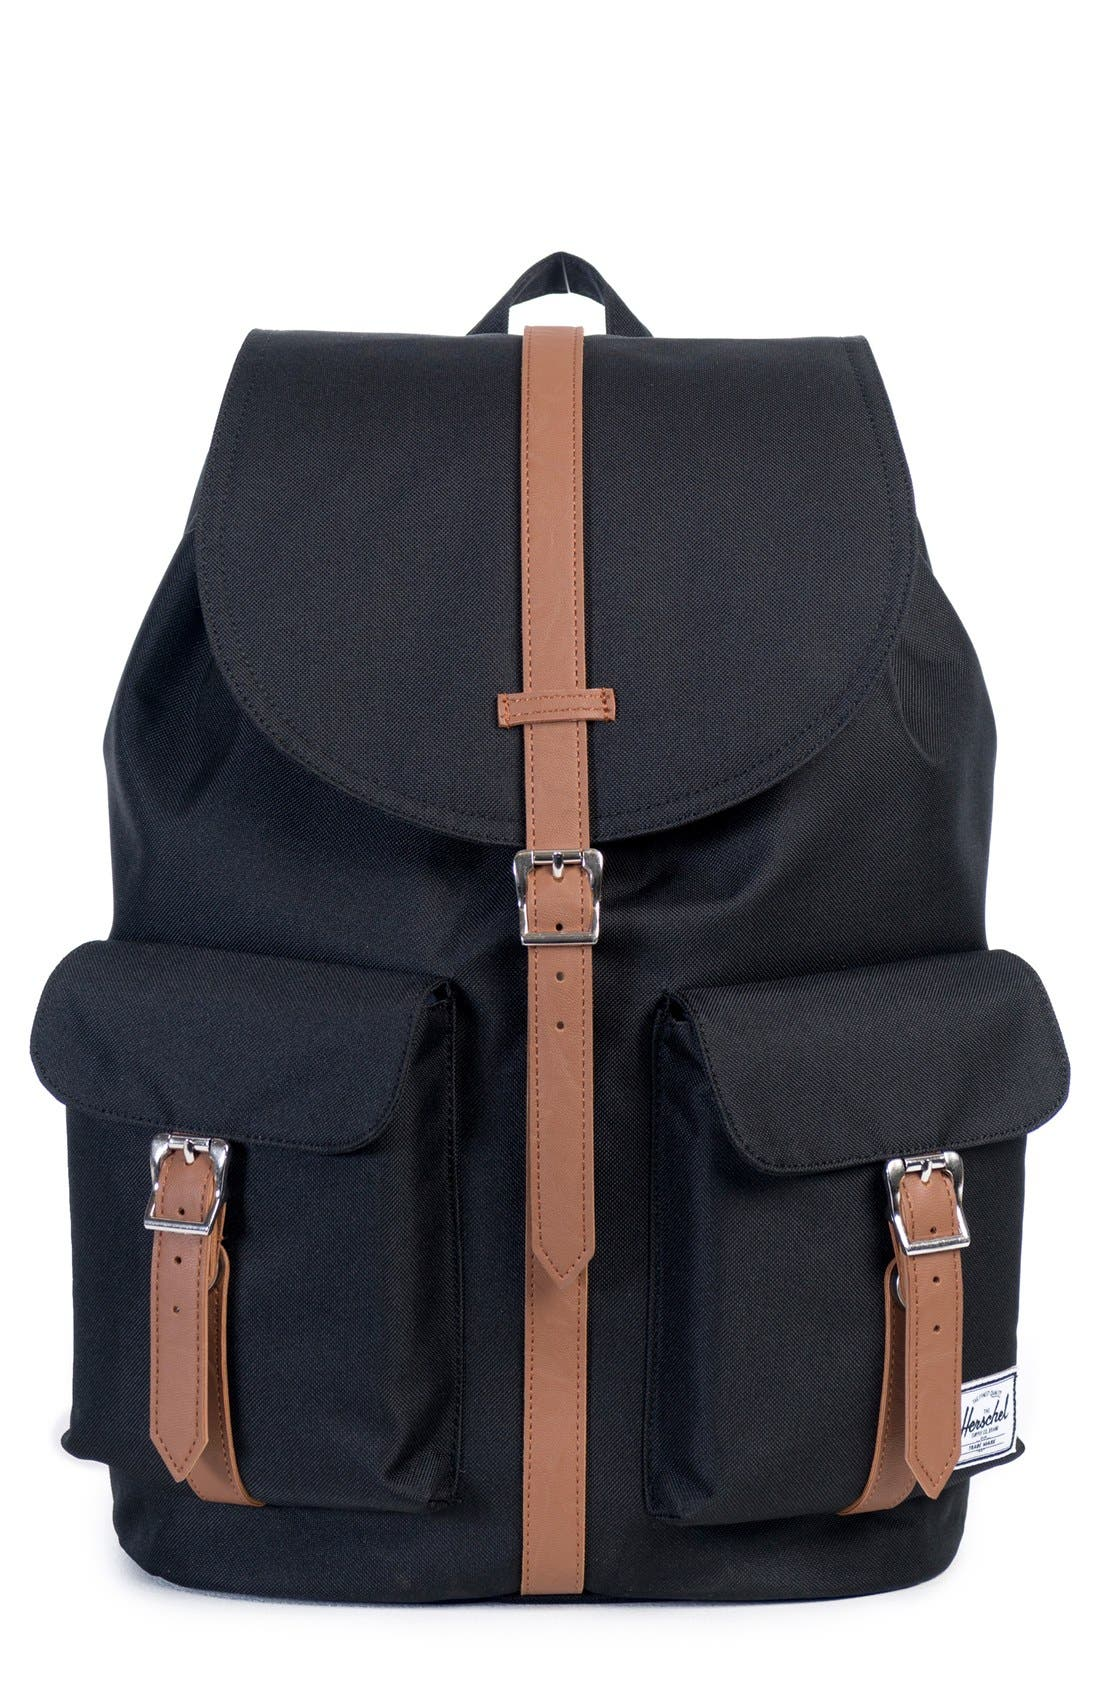 'Dawson' Backpack,                             Main thumbnail 1, color,                             001